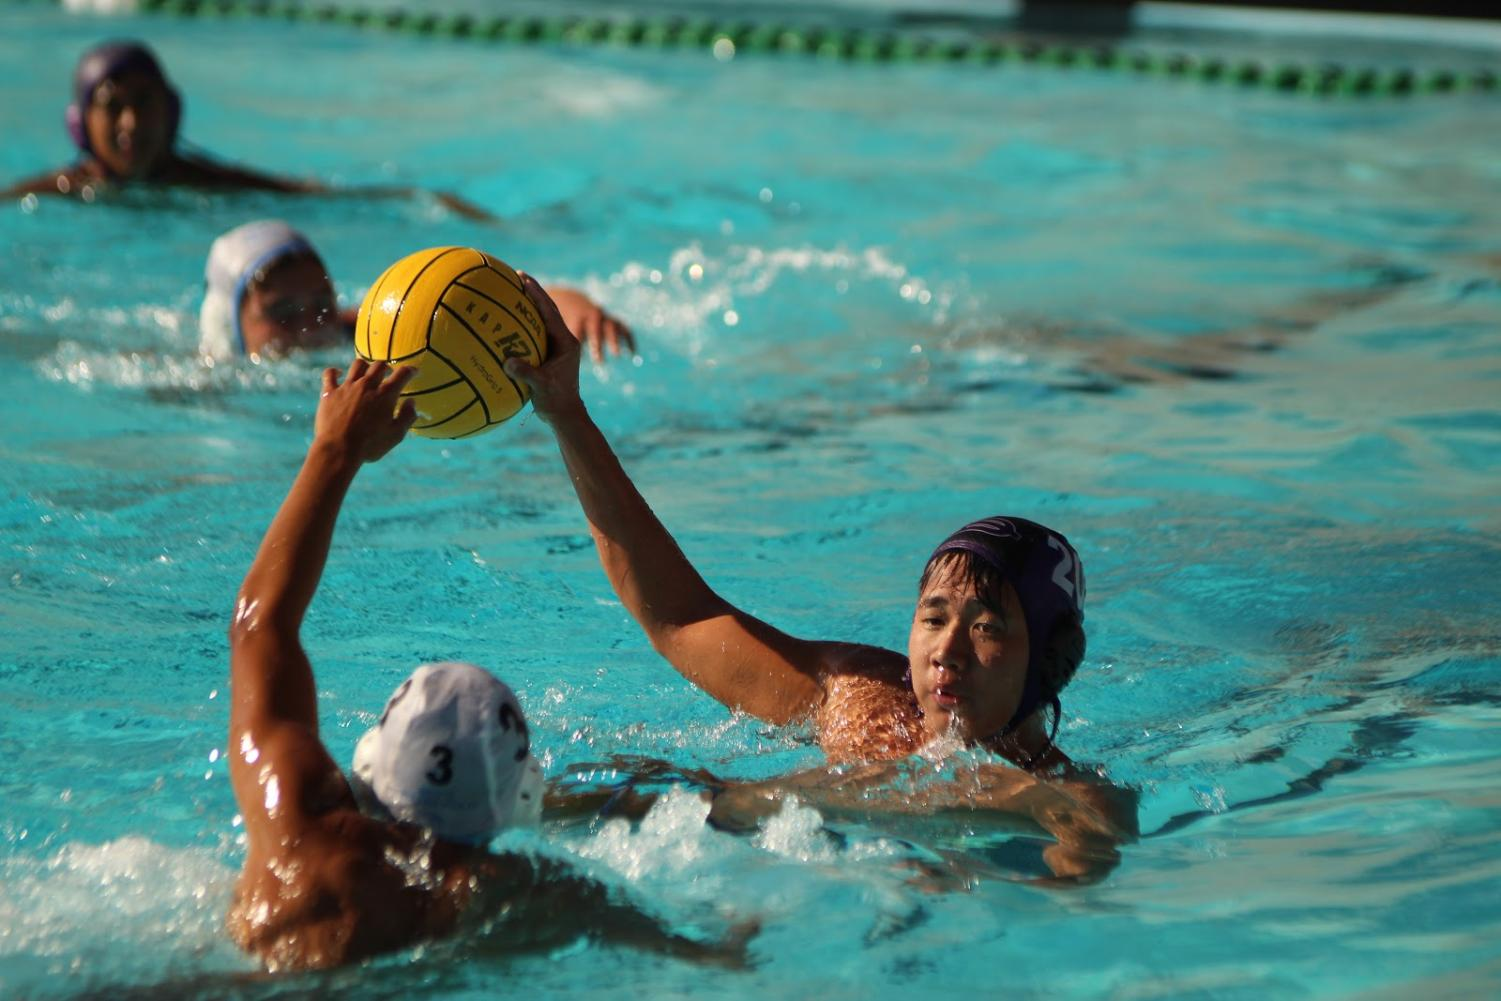 Senior Everett Chang goes for the shot when competing in the win against Ontario High School by a score of 19-7.